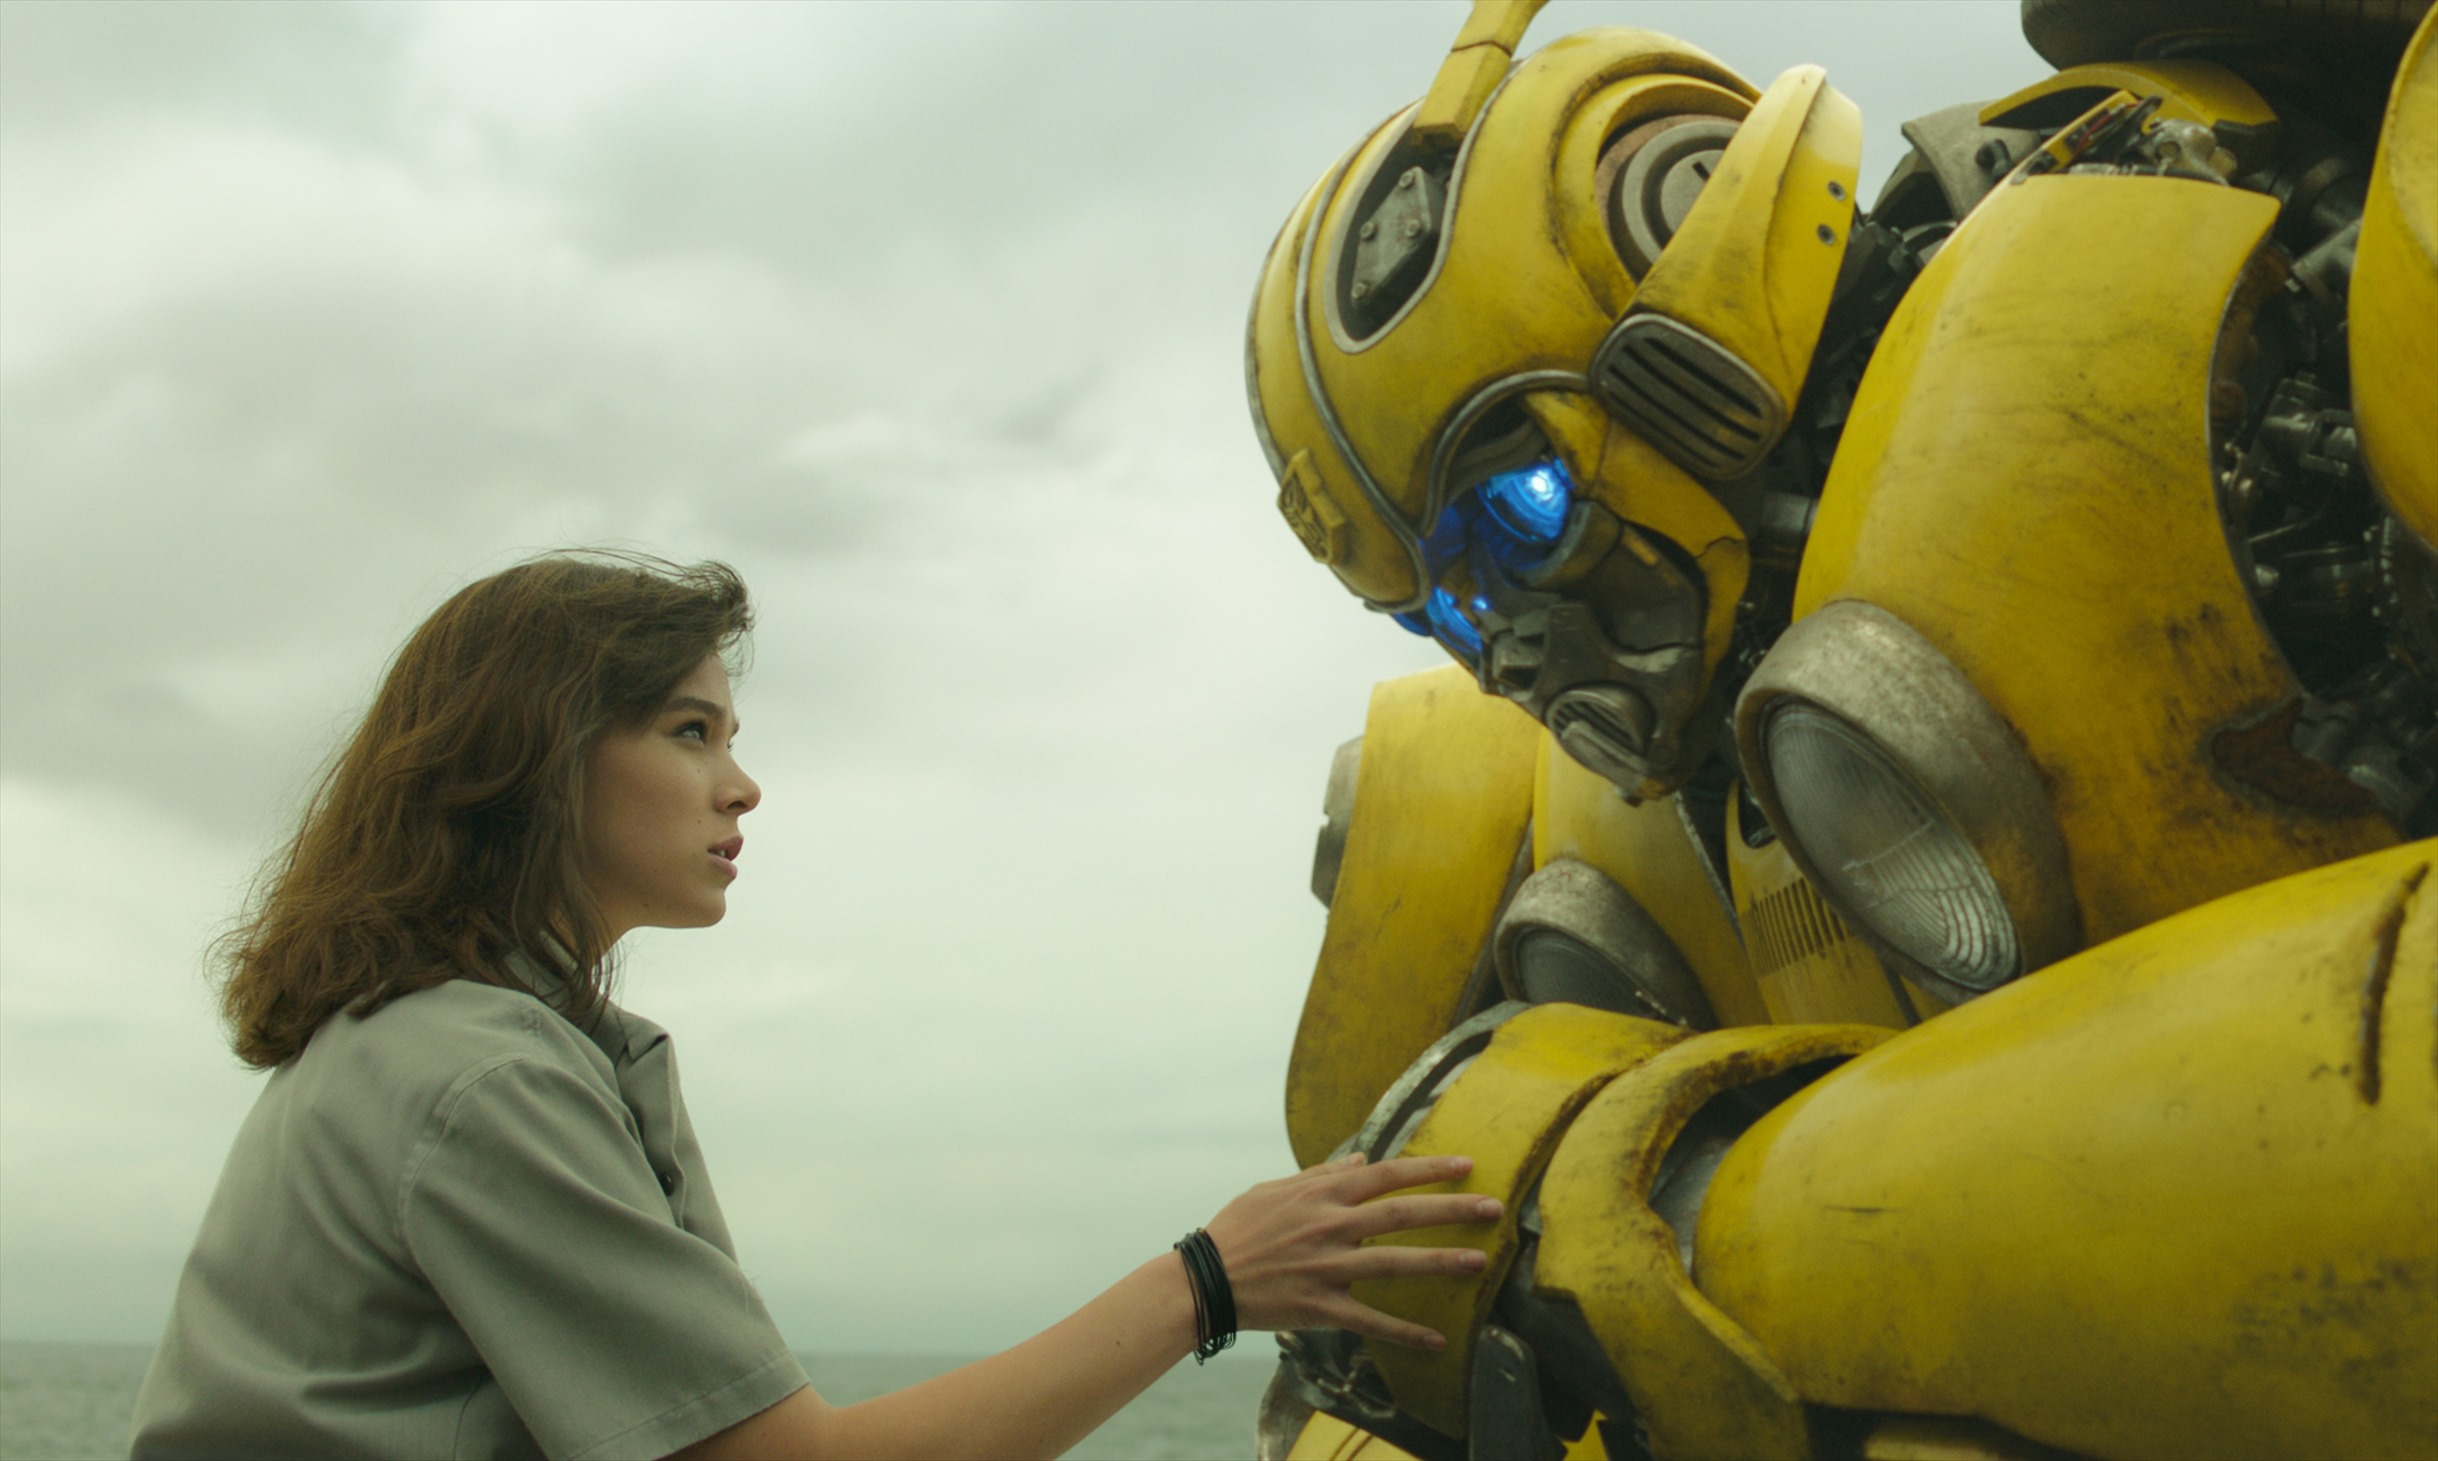 Left to right: Hailee Steinfeld as Charlie and Bumblebee in BUMBLEBEE from Paramount Pictures.